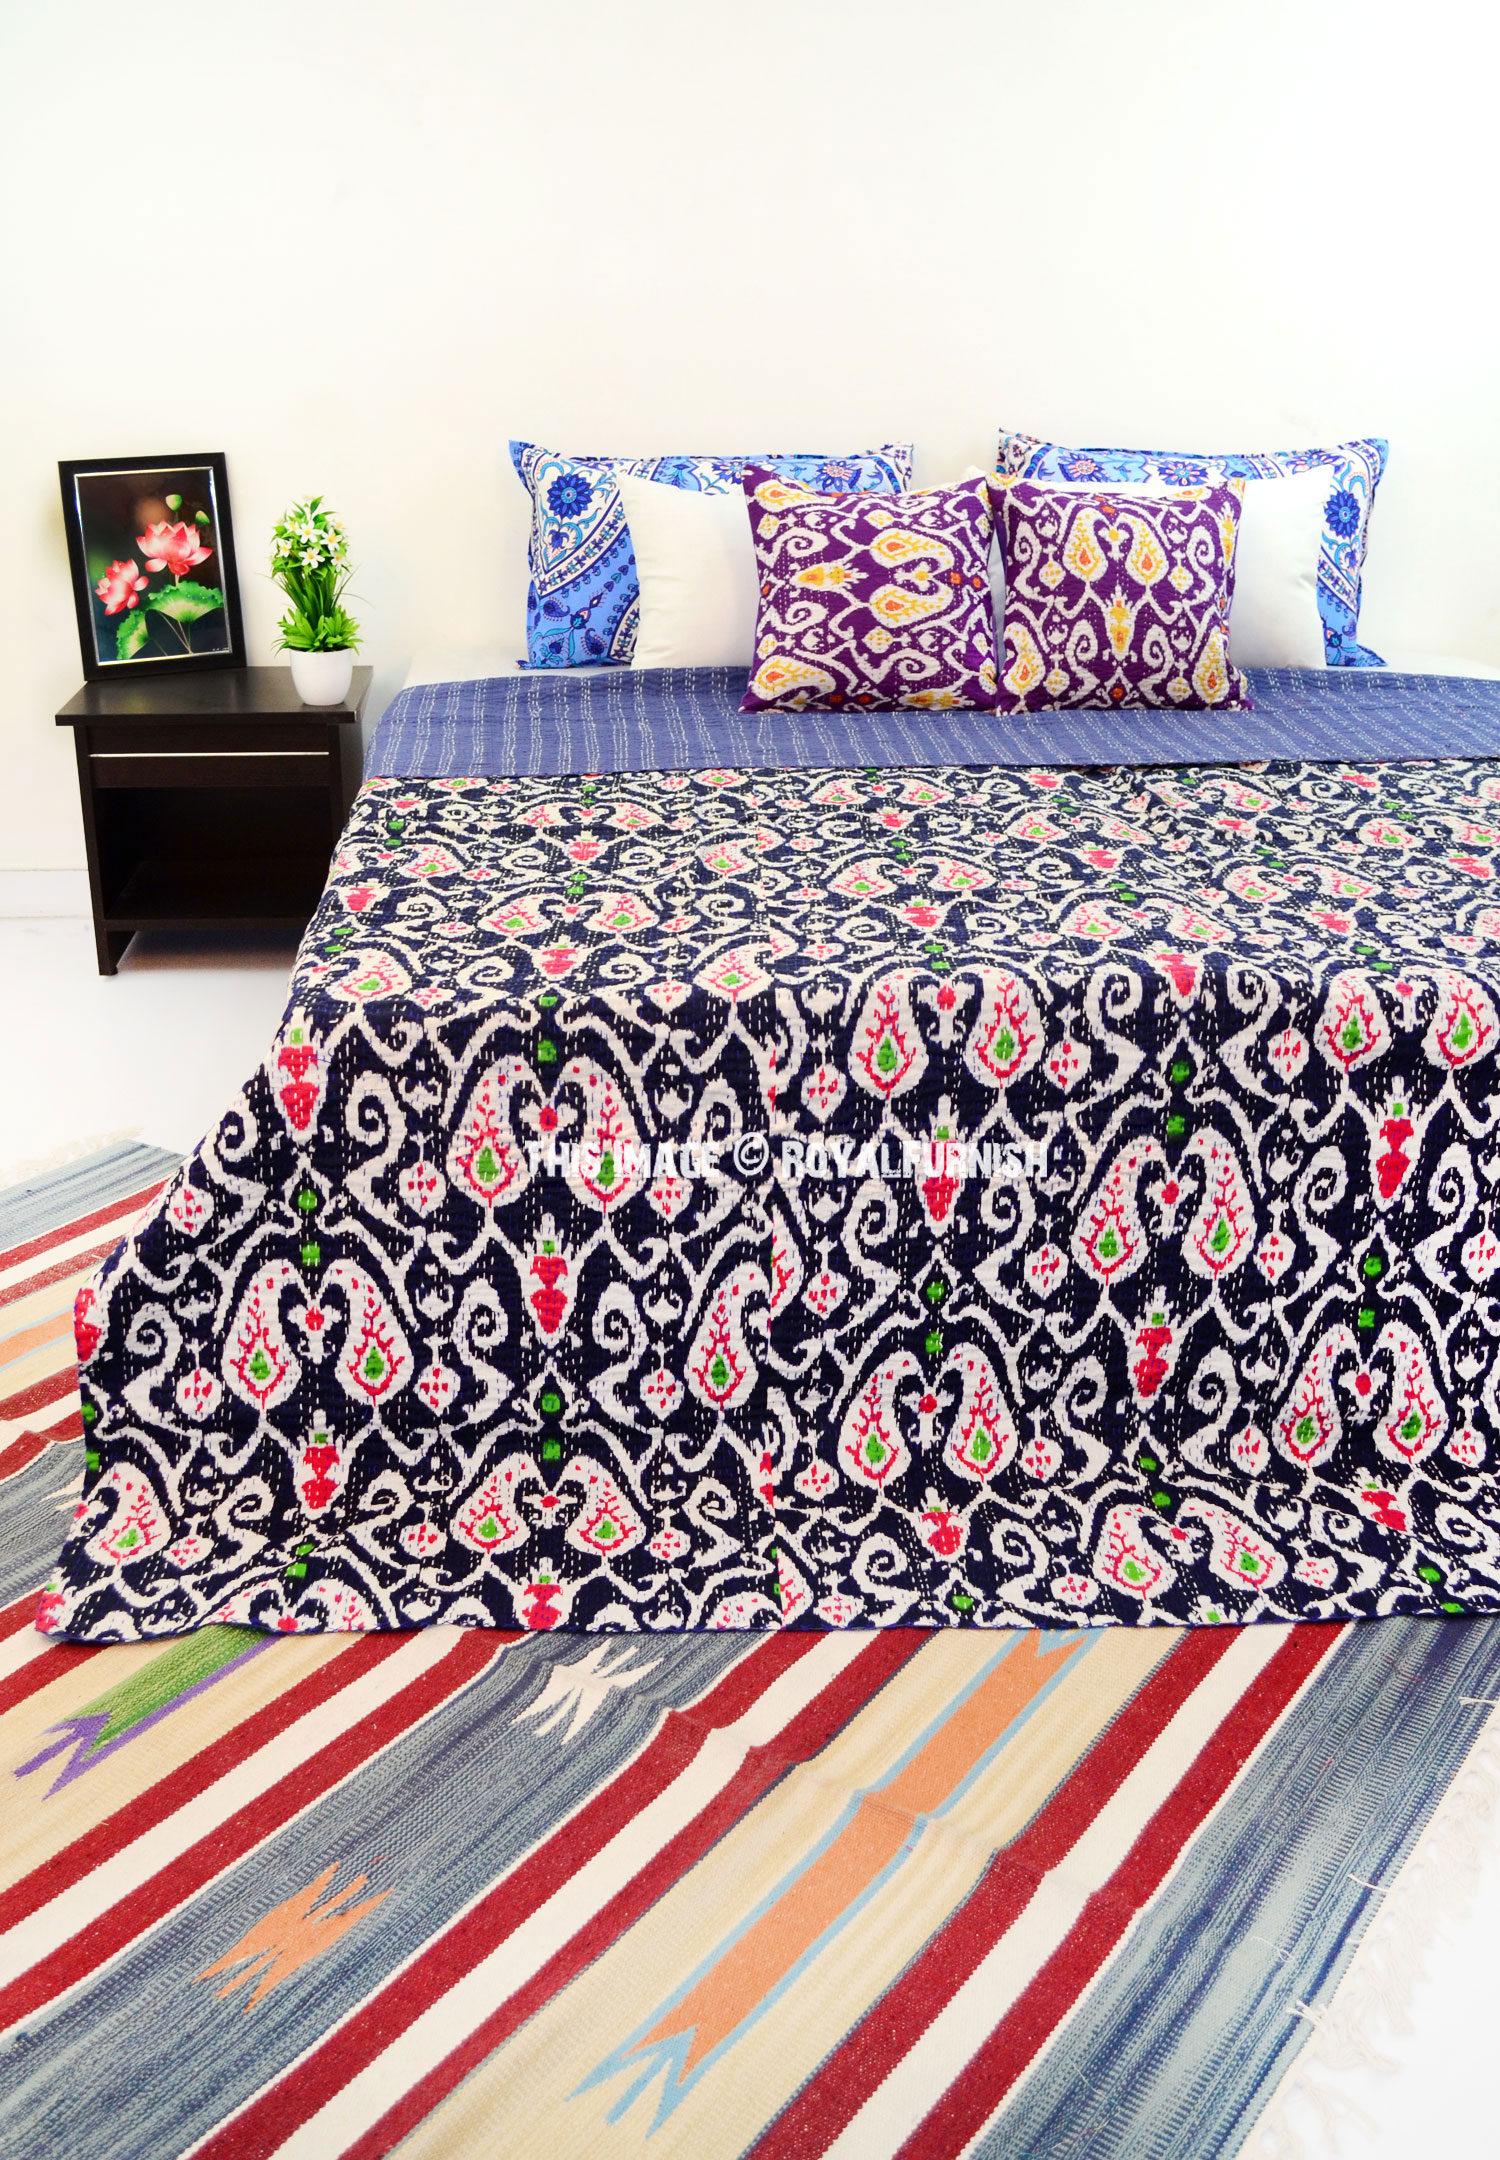 Blue Queen Size Paisley Ikat Kantha Quilt Blanket Bedding